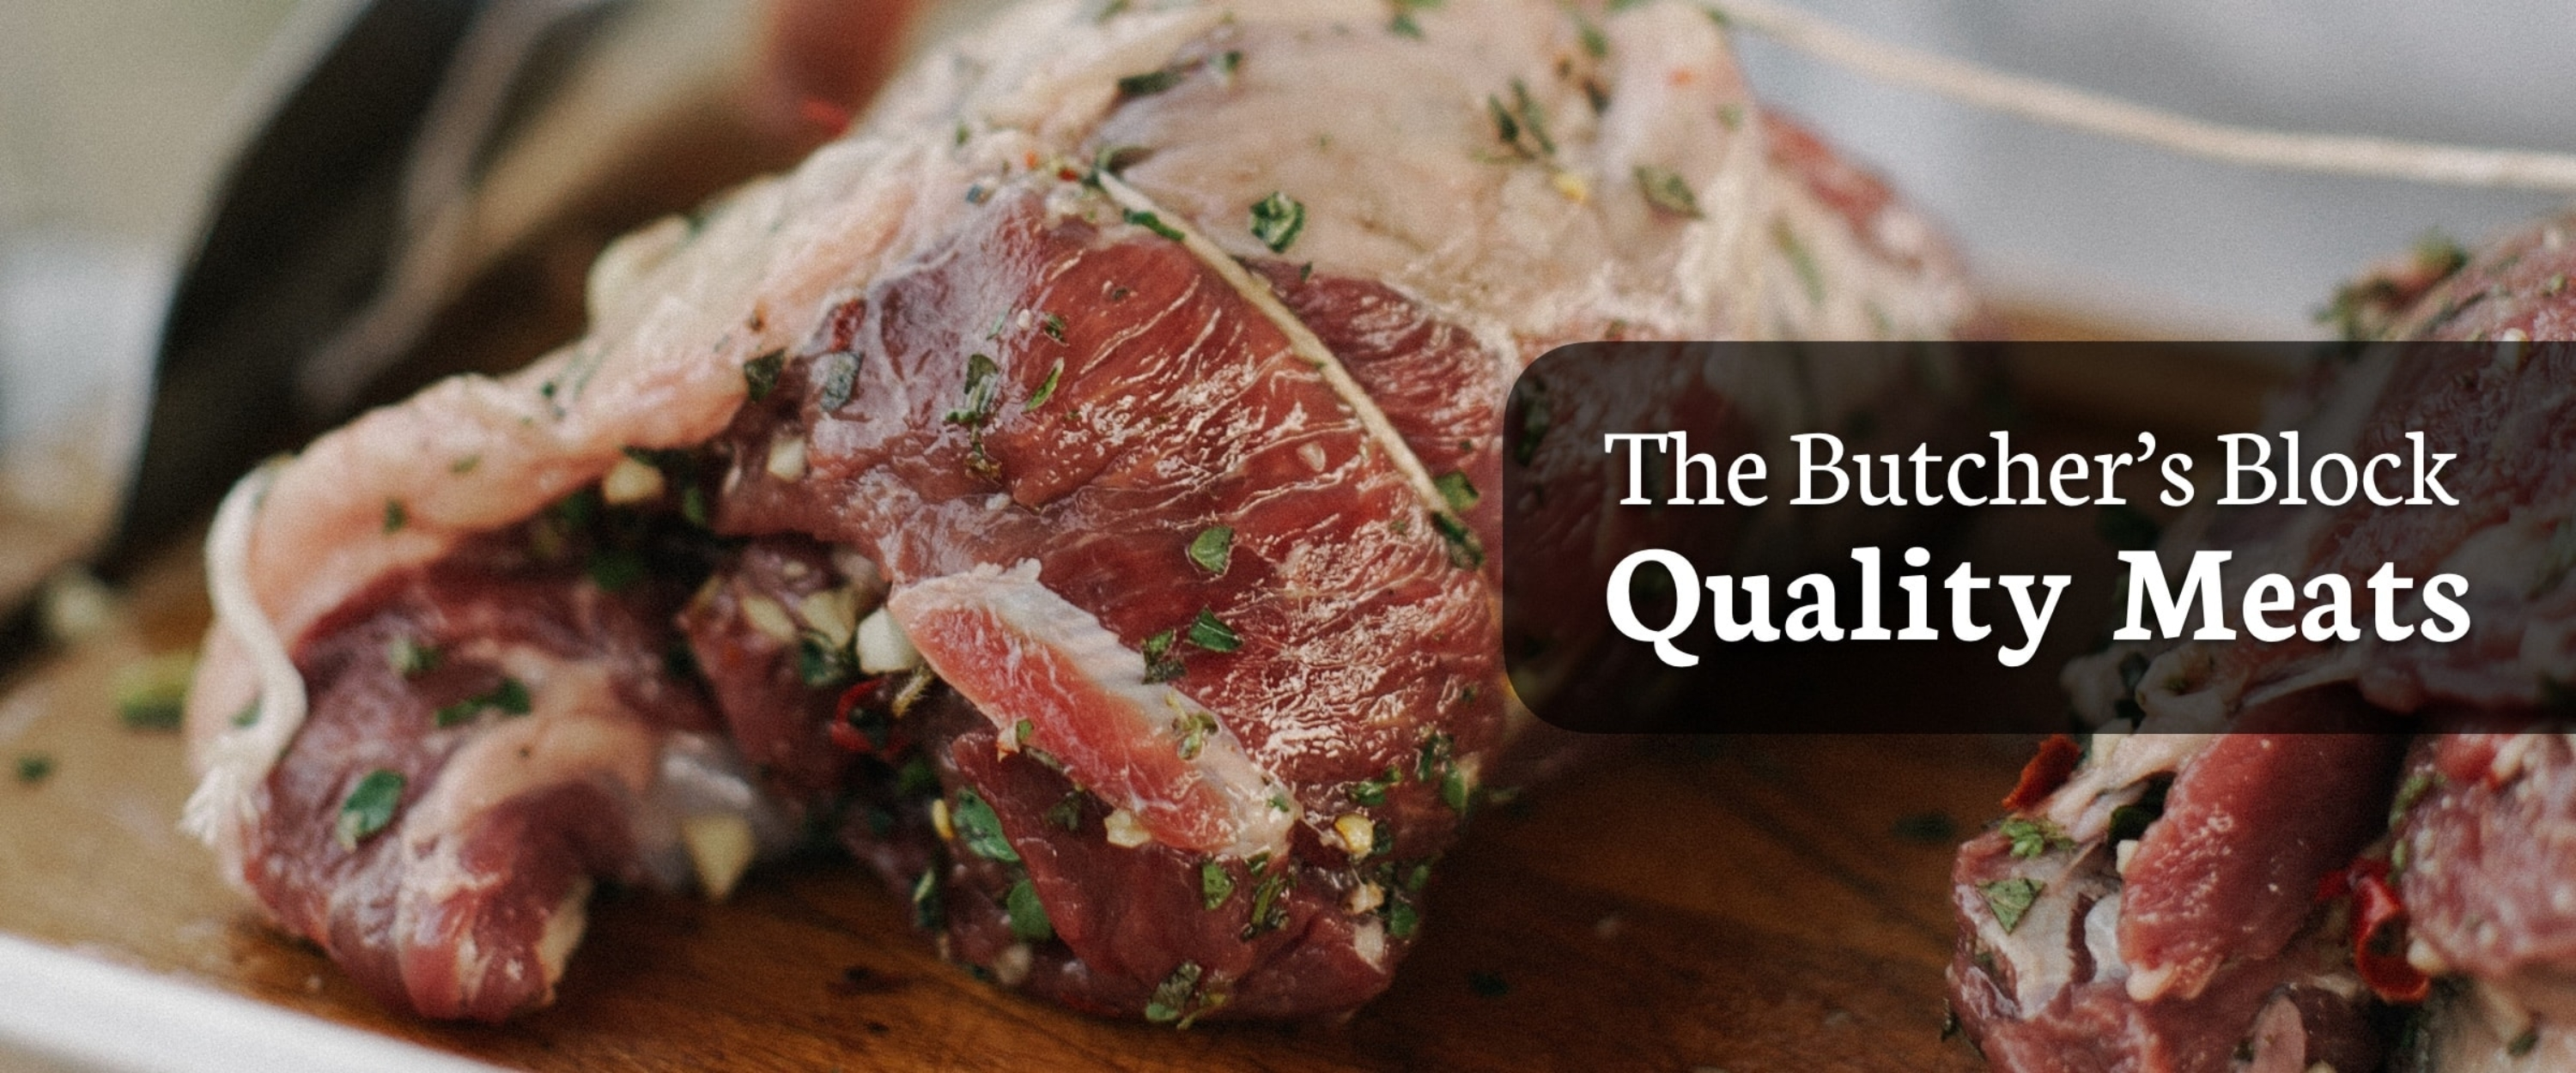 The Butcher's Block Quality Meats